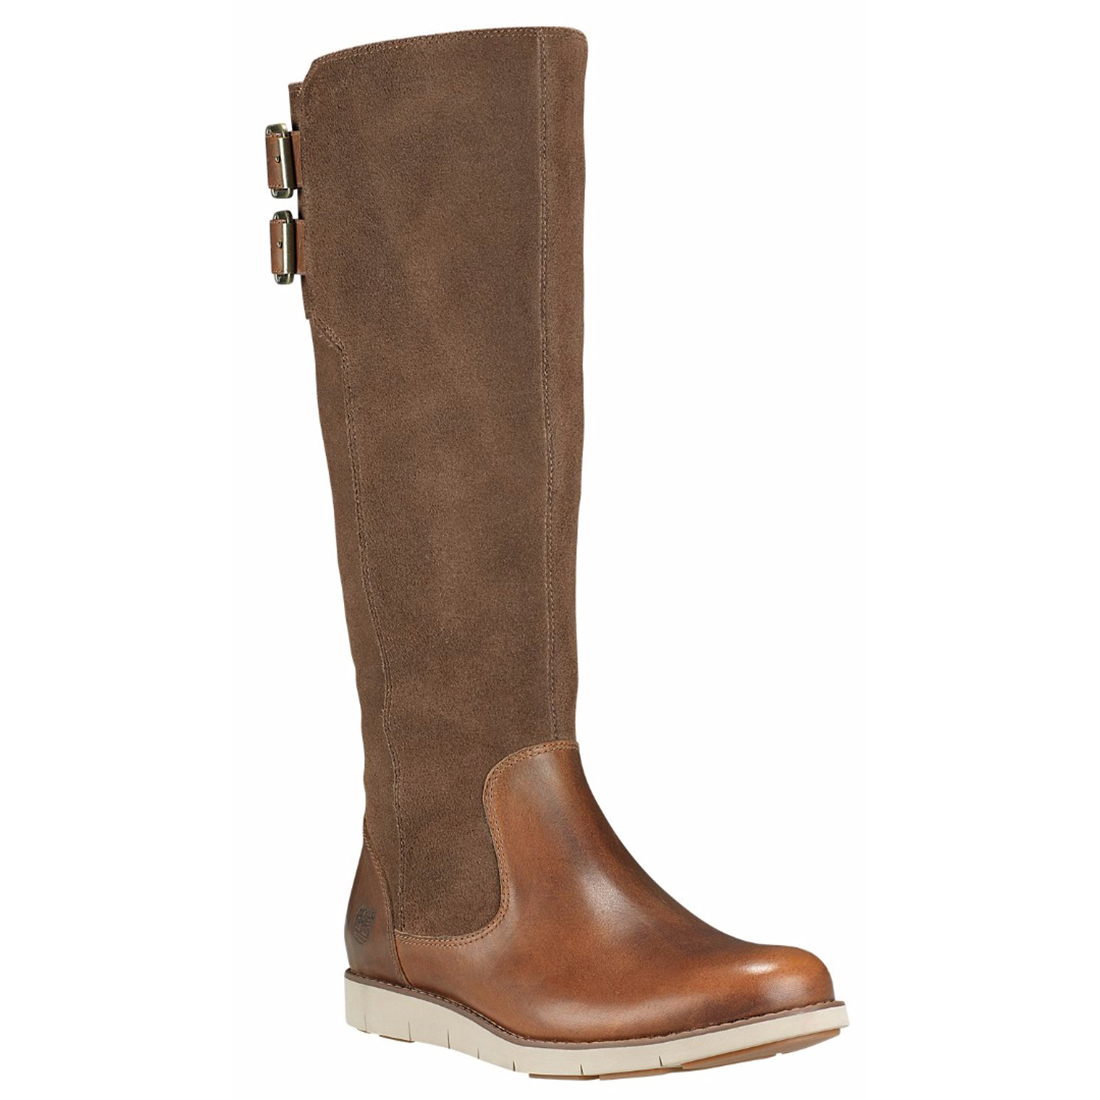 Timberland Womens Lakeville Tall by Timberland